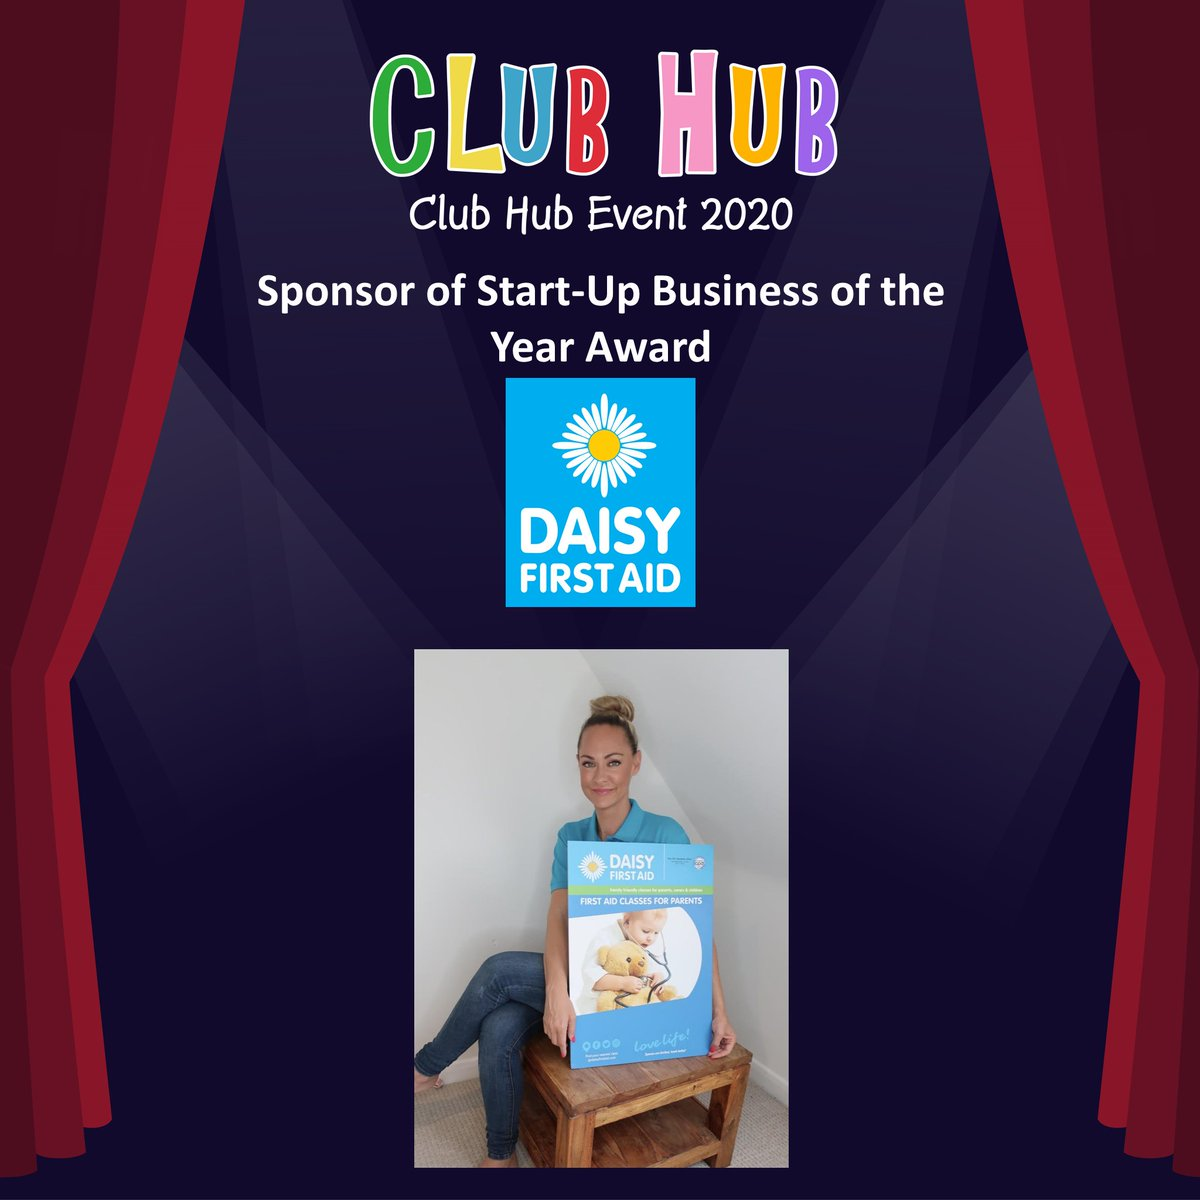 Congratulations to these businesses who have been nominated for Start-Up Business of the Year Sponsored by @daisyfirstaid   https://clubhubuk.co.uk/club-hub-event-2020/2020-entry-categories/…  @messaroundnotts @mess_westpic.twitter.com/5Ha0Q003QX